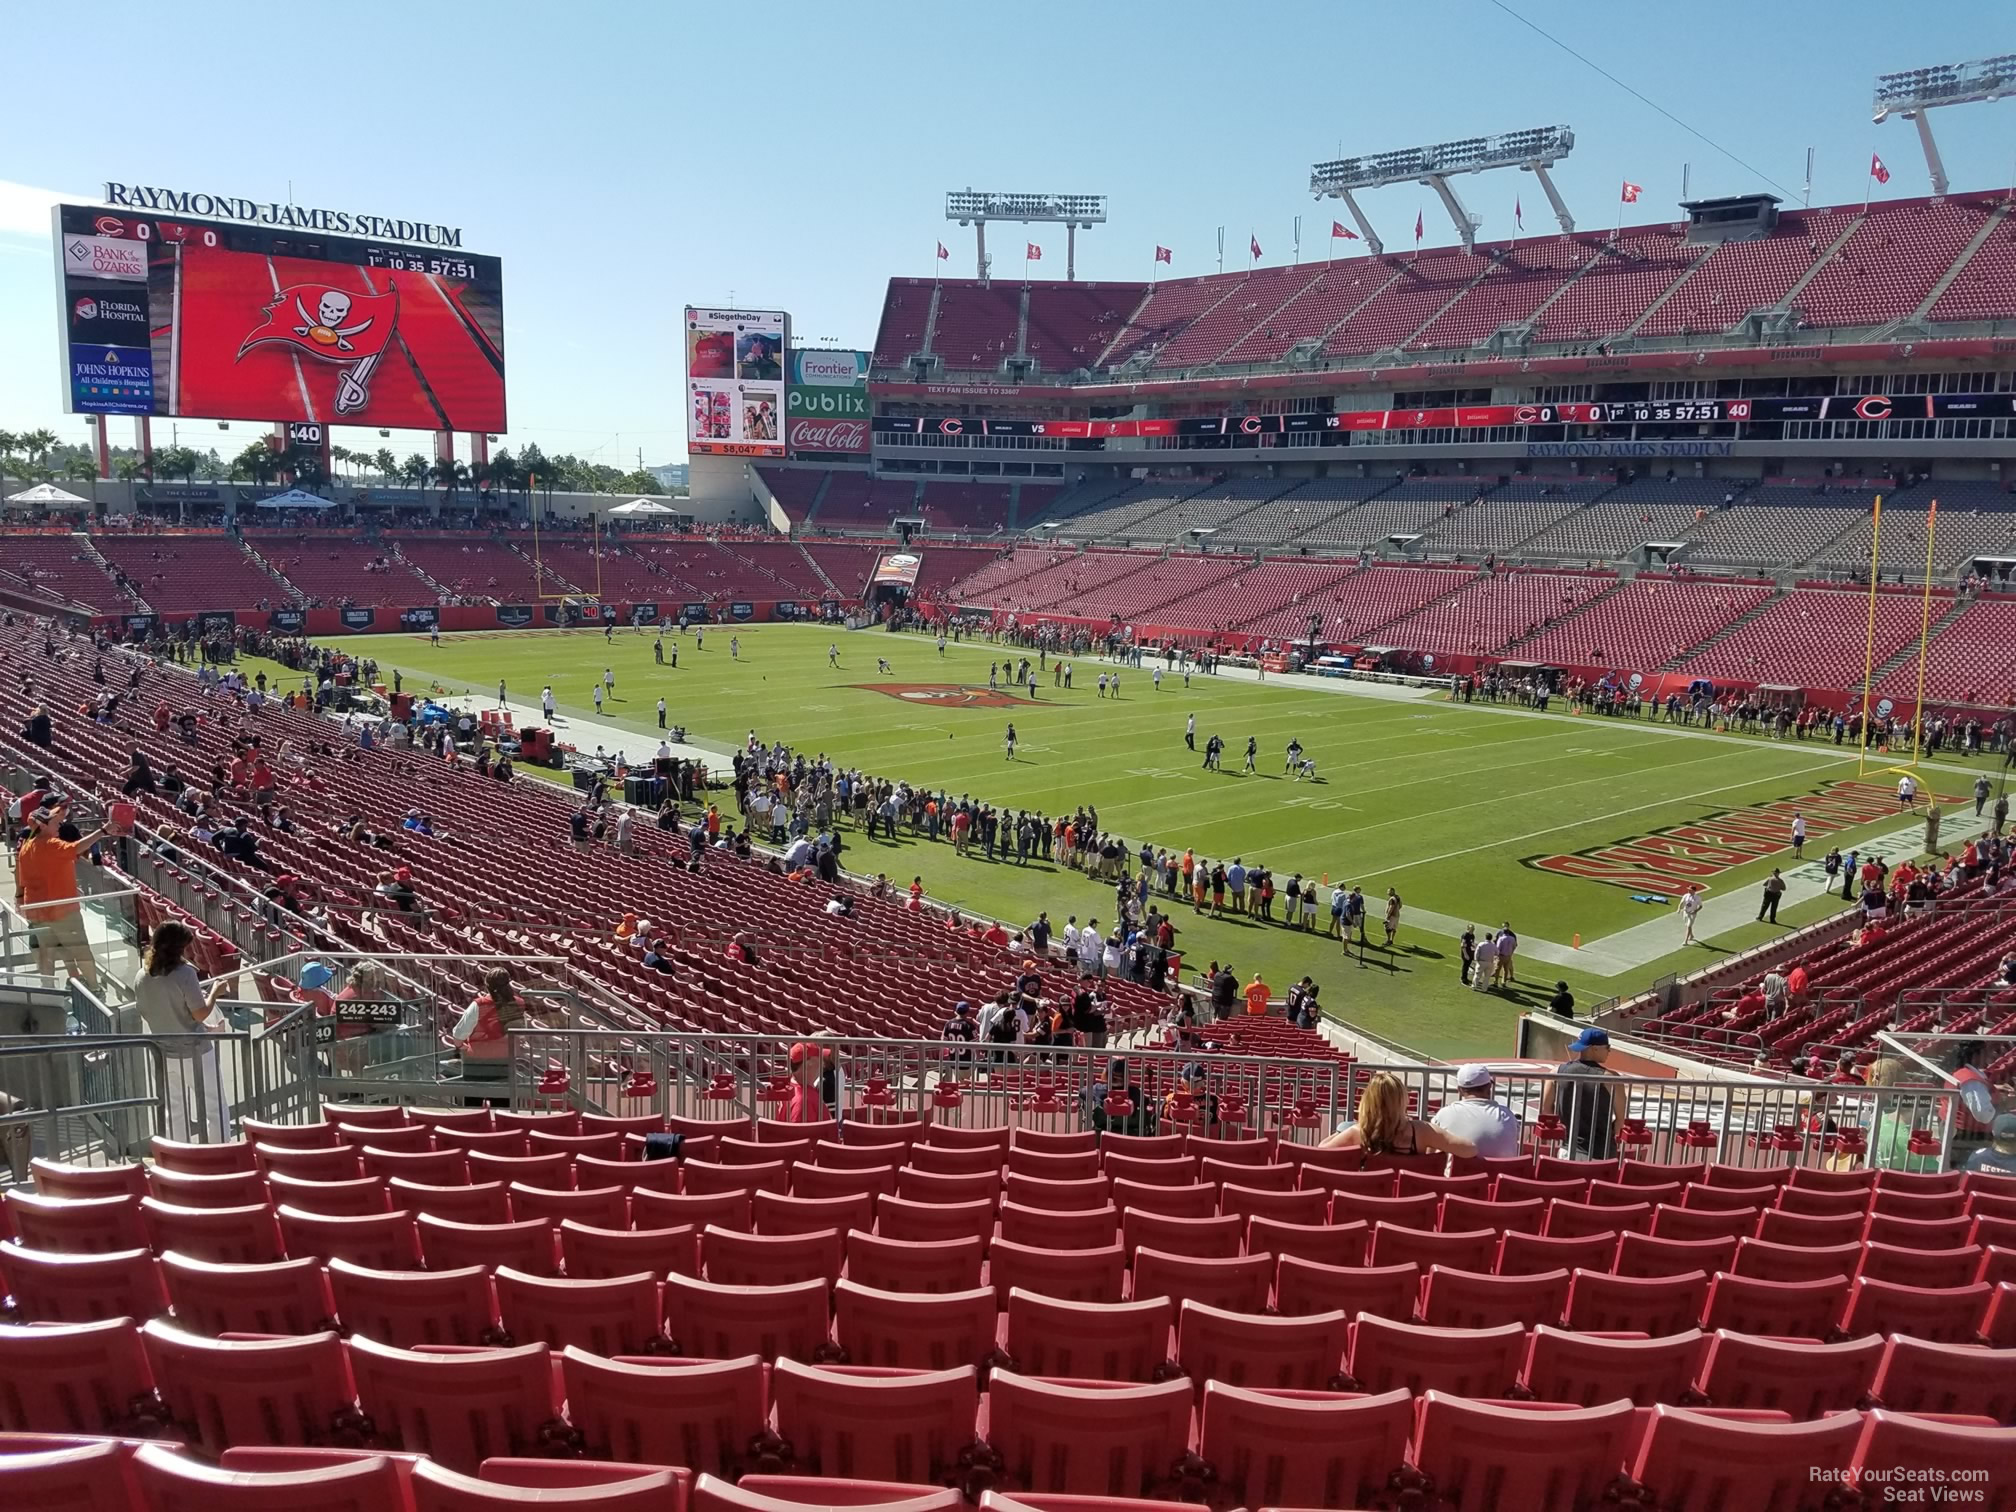 Seat View for Raymond James Stadium Section 242, Row L